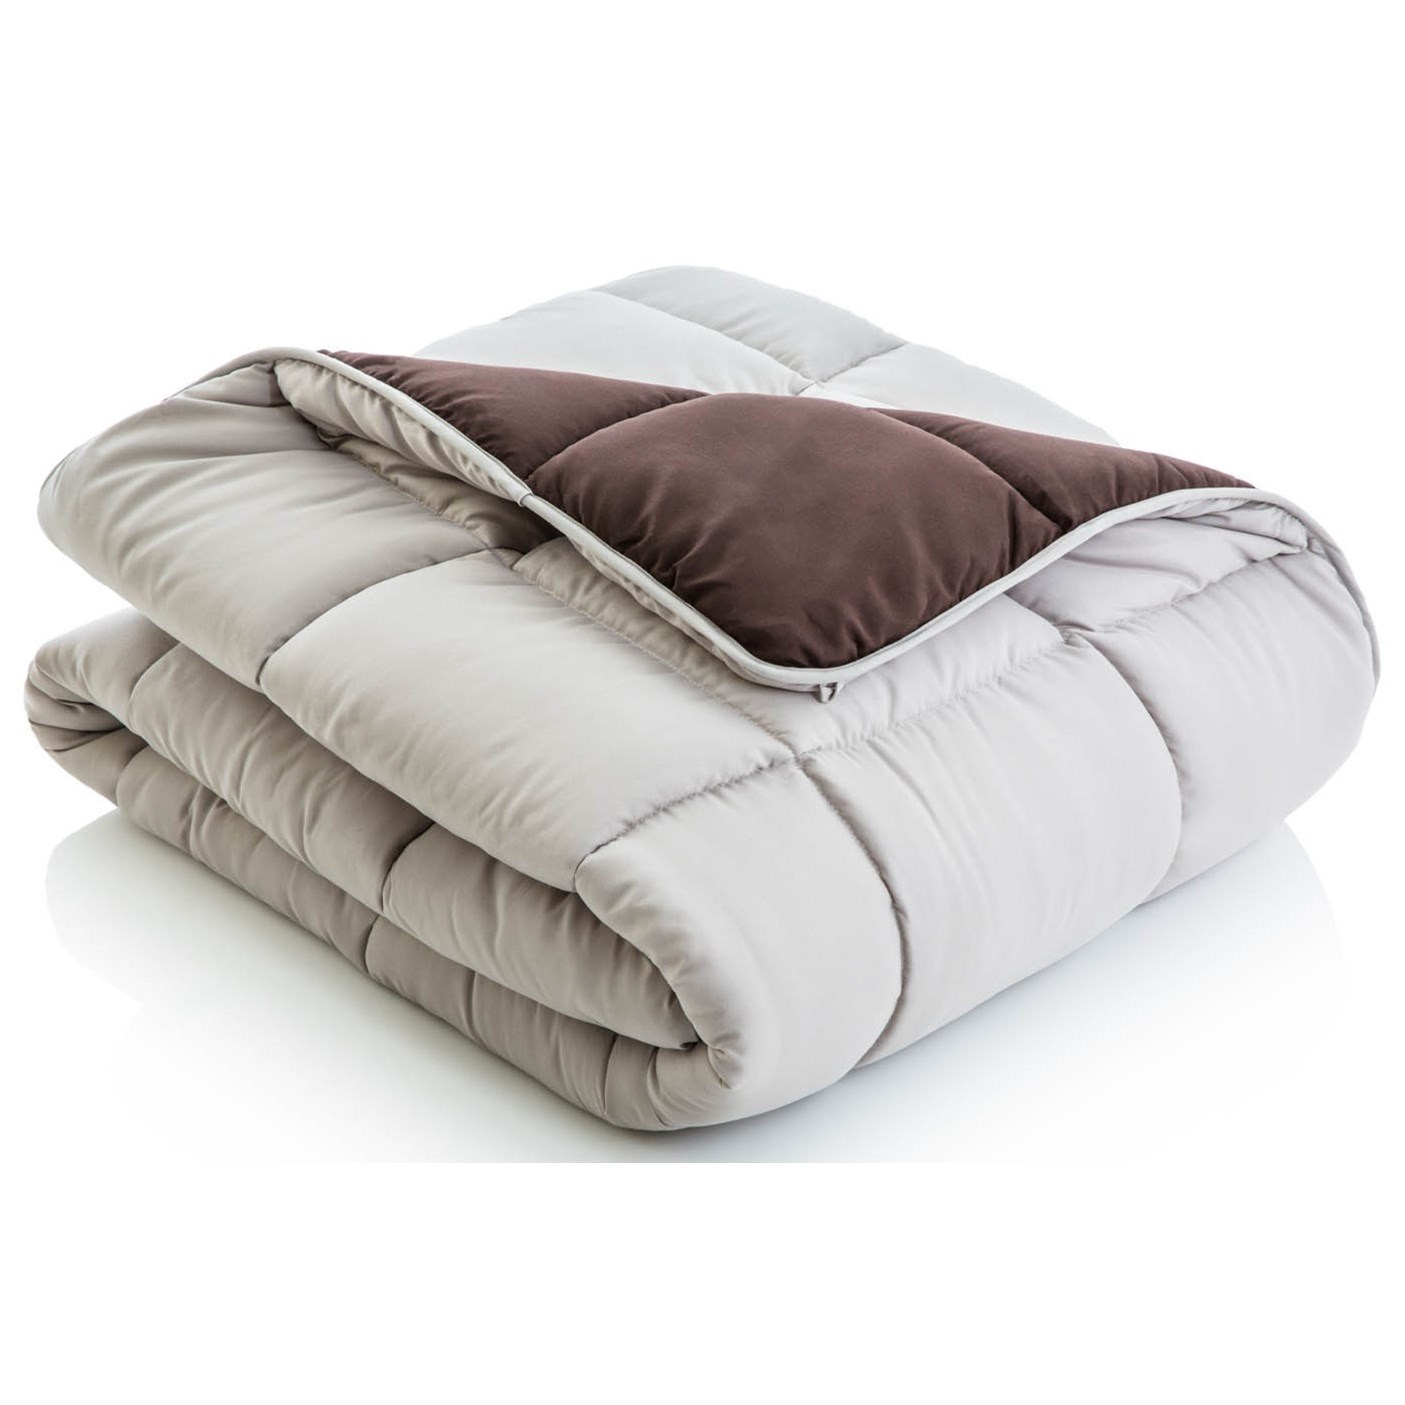 Malouf Reversible Bed in a Bag Twin XL Reversible Bed in a Bag - Item Number: MA01TXDRCOBB